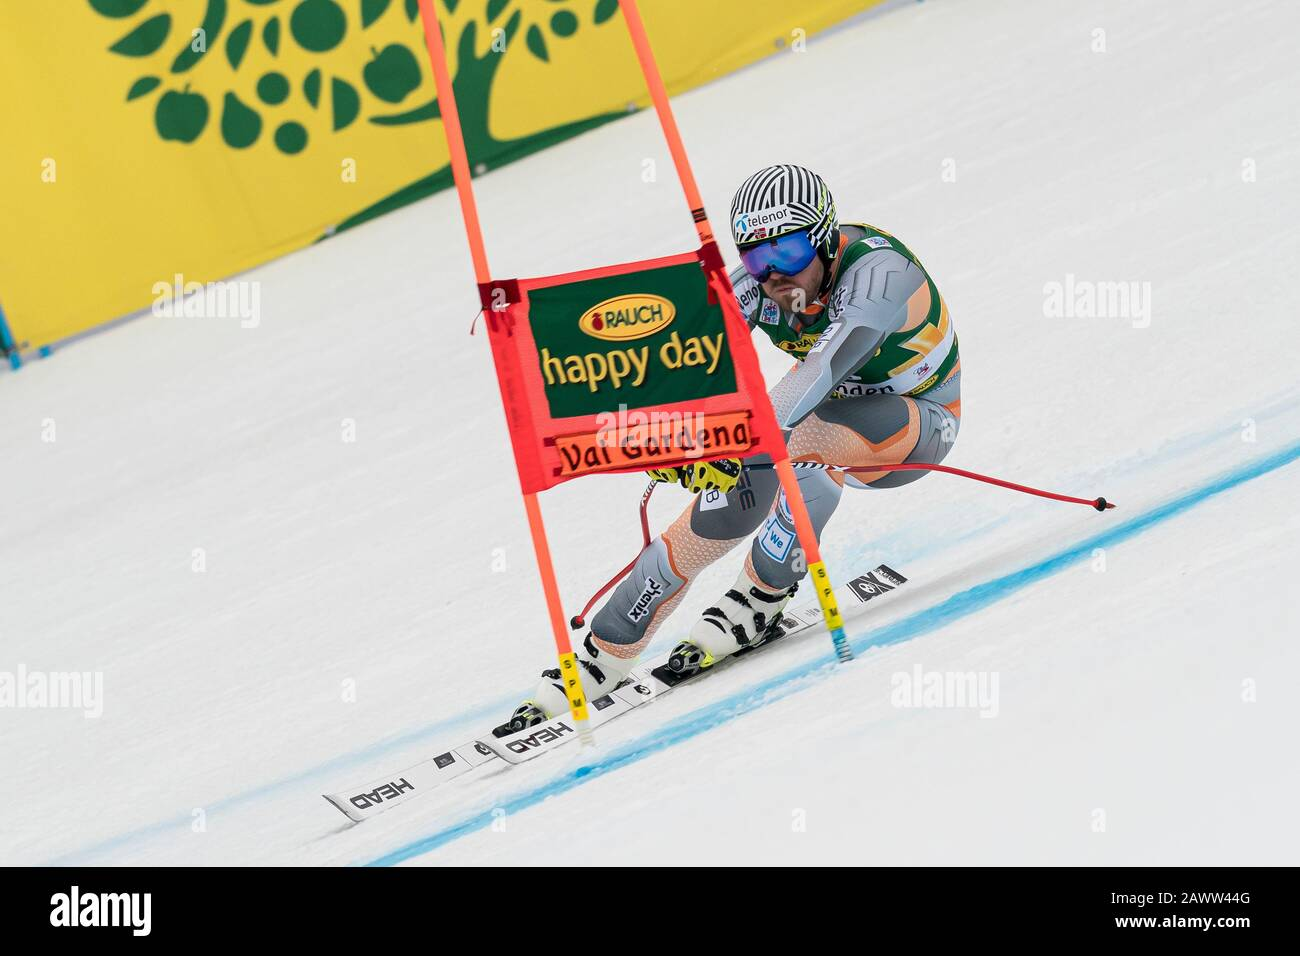 Val Gardena, Italy 20 December 2019. Jansrud Kjetil (Nor) competing in the Audi Fis Alpine Skiing World Cup Men's Super-G Race  on the Saslong Course Stock Photo